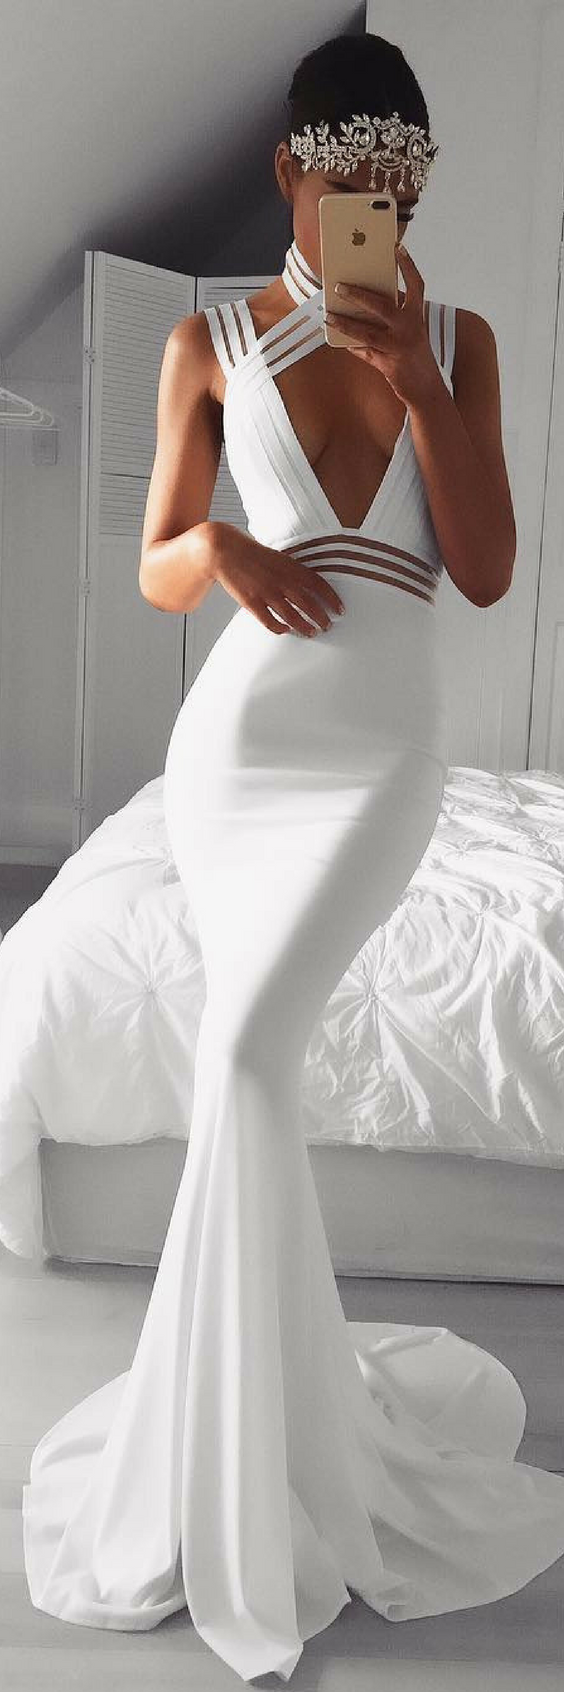 Maybe too revealing for a wedding gown, but it's beautiful ...